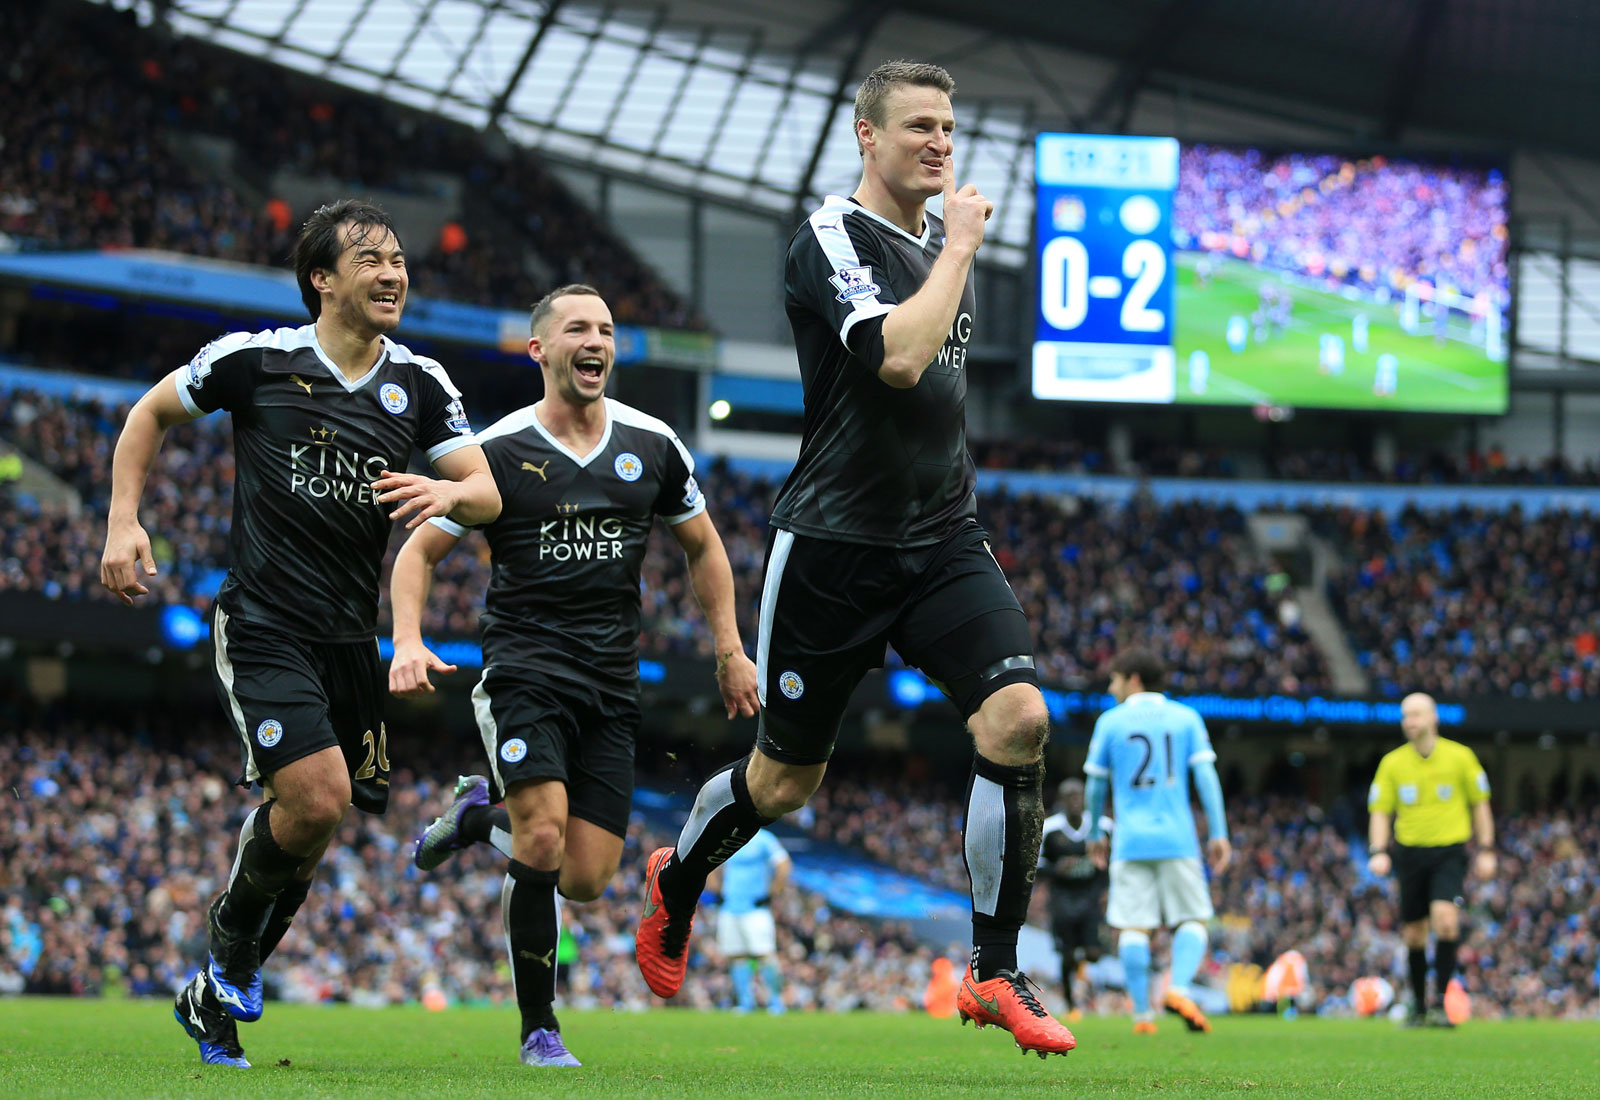 A match at Manchester City was supposed to be the start of Leicester's downfall, but the Foxes were having none of that. Robert Huth scored in the third minute to shock the Etihad faithful, and he added another later in a 3-1 win.